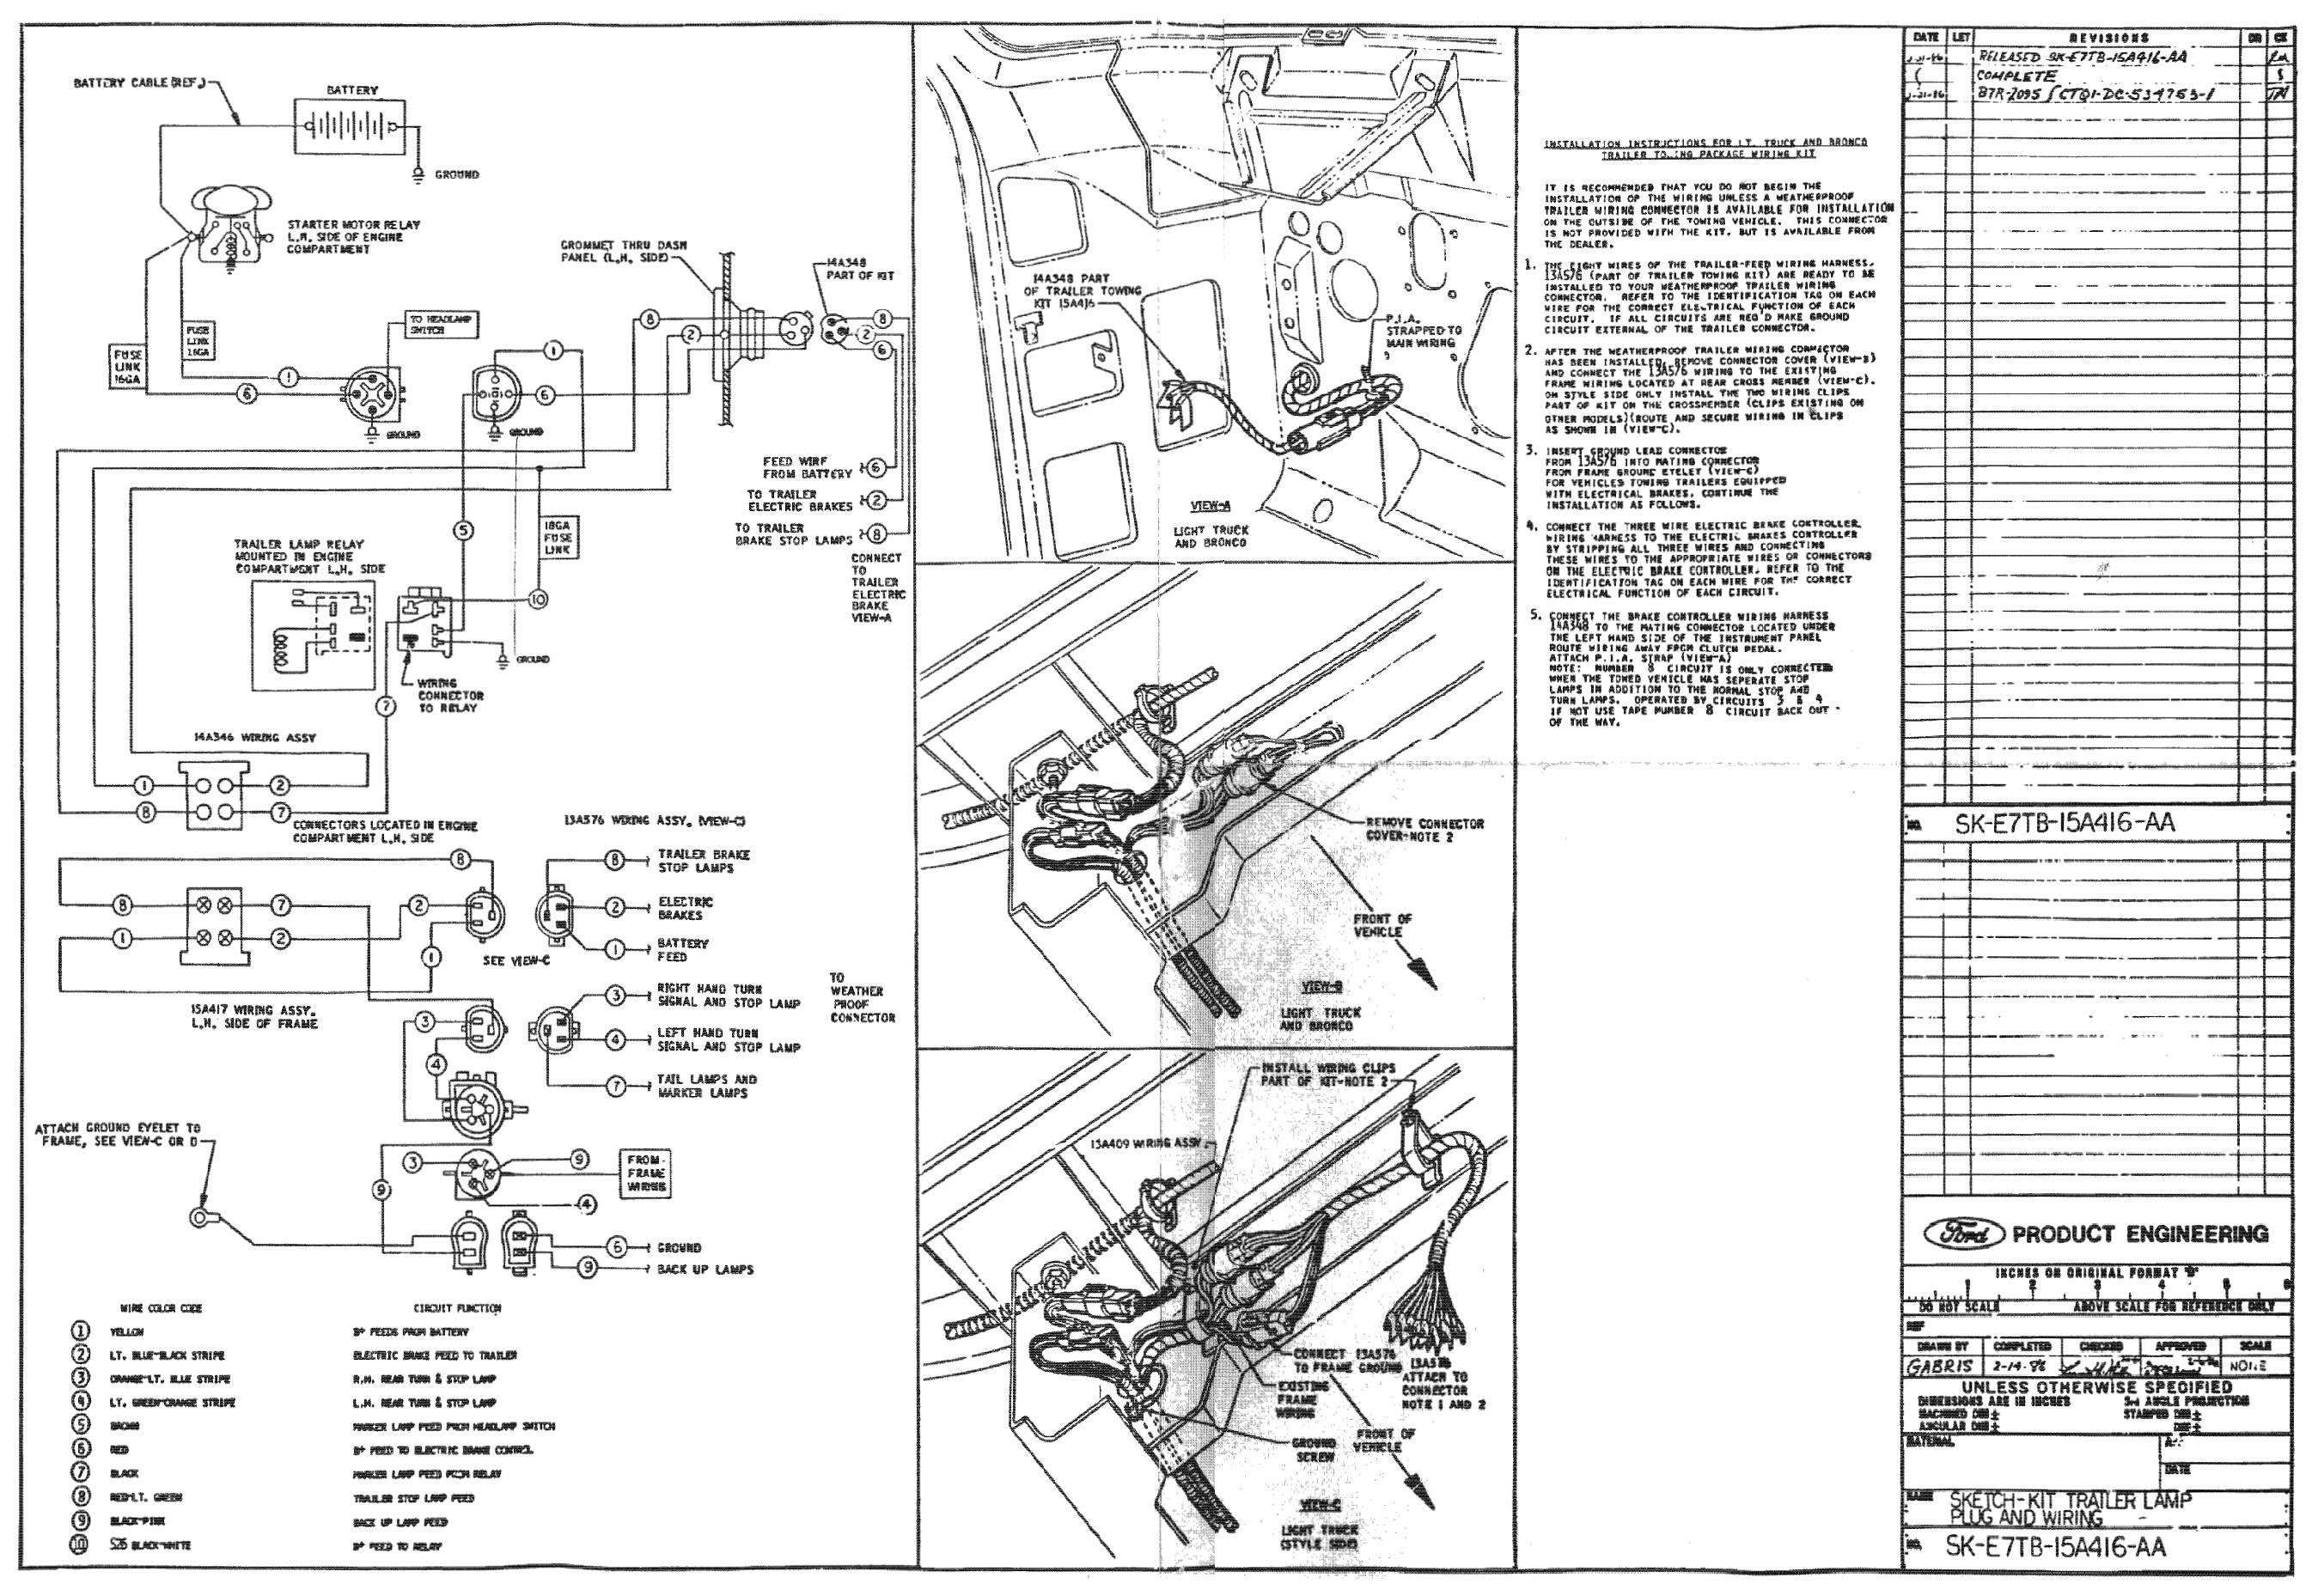 wiring diagram for 1996 starcraft wiring get free image about wiring diagram